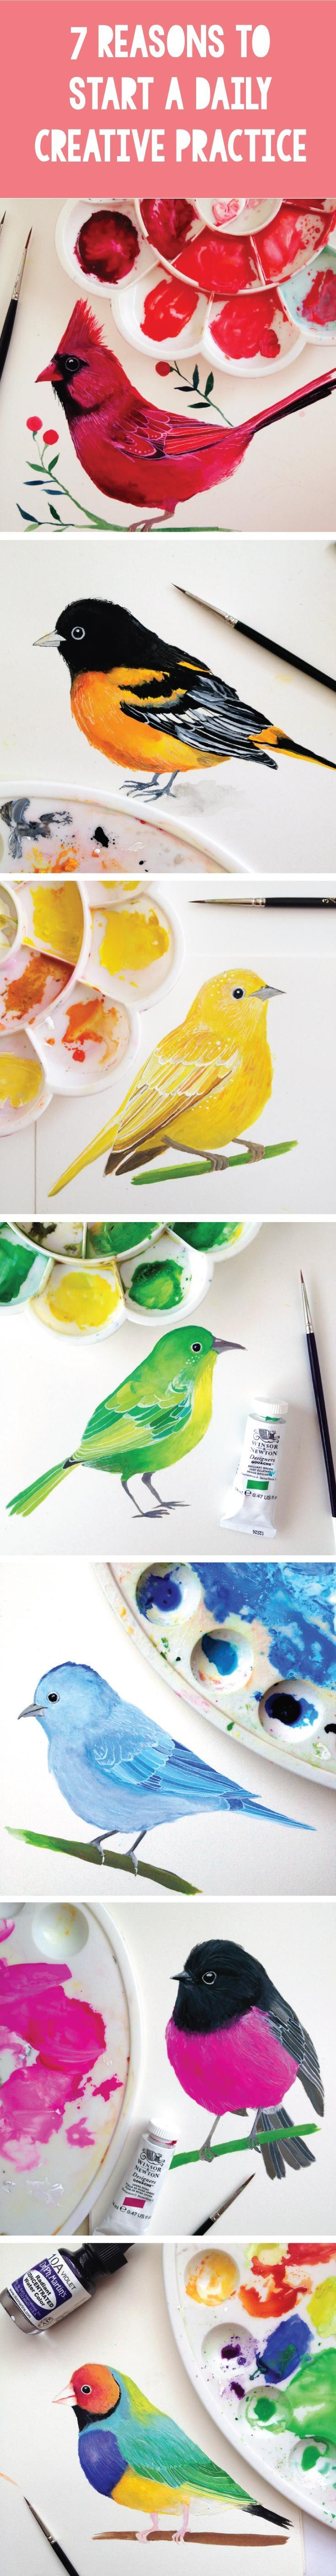 7 Reasons to Start A Daily Creative Practice. Daily bird paintings by PRINTSPIRING.  https://instagram.com/printspiring/